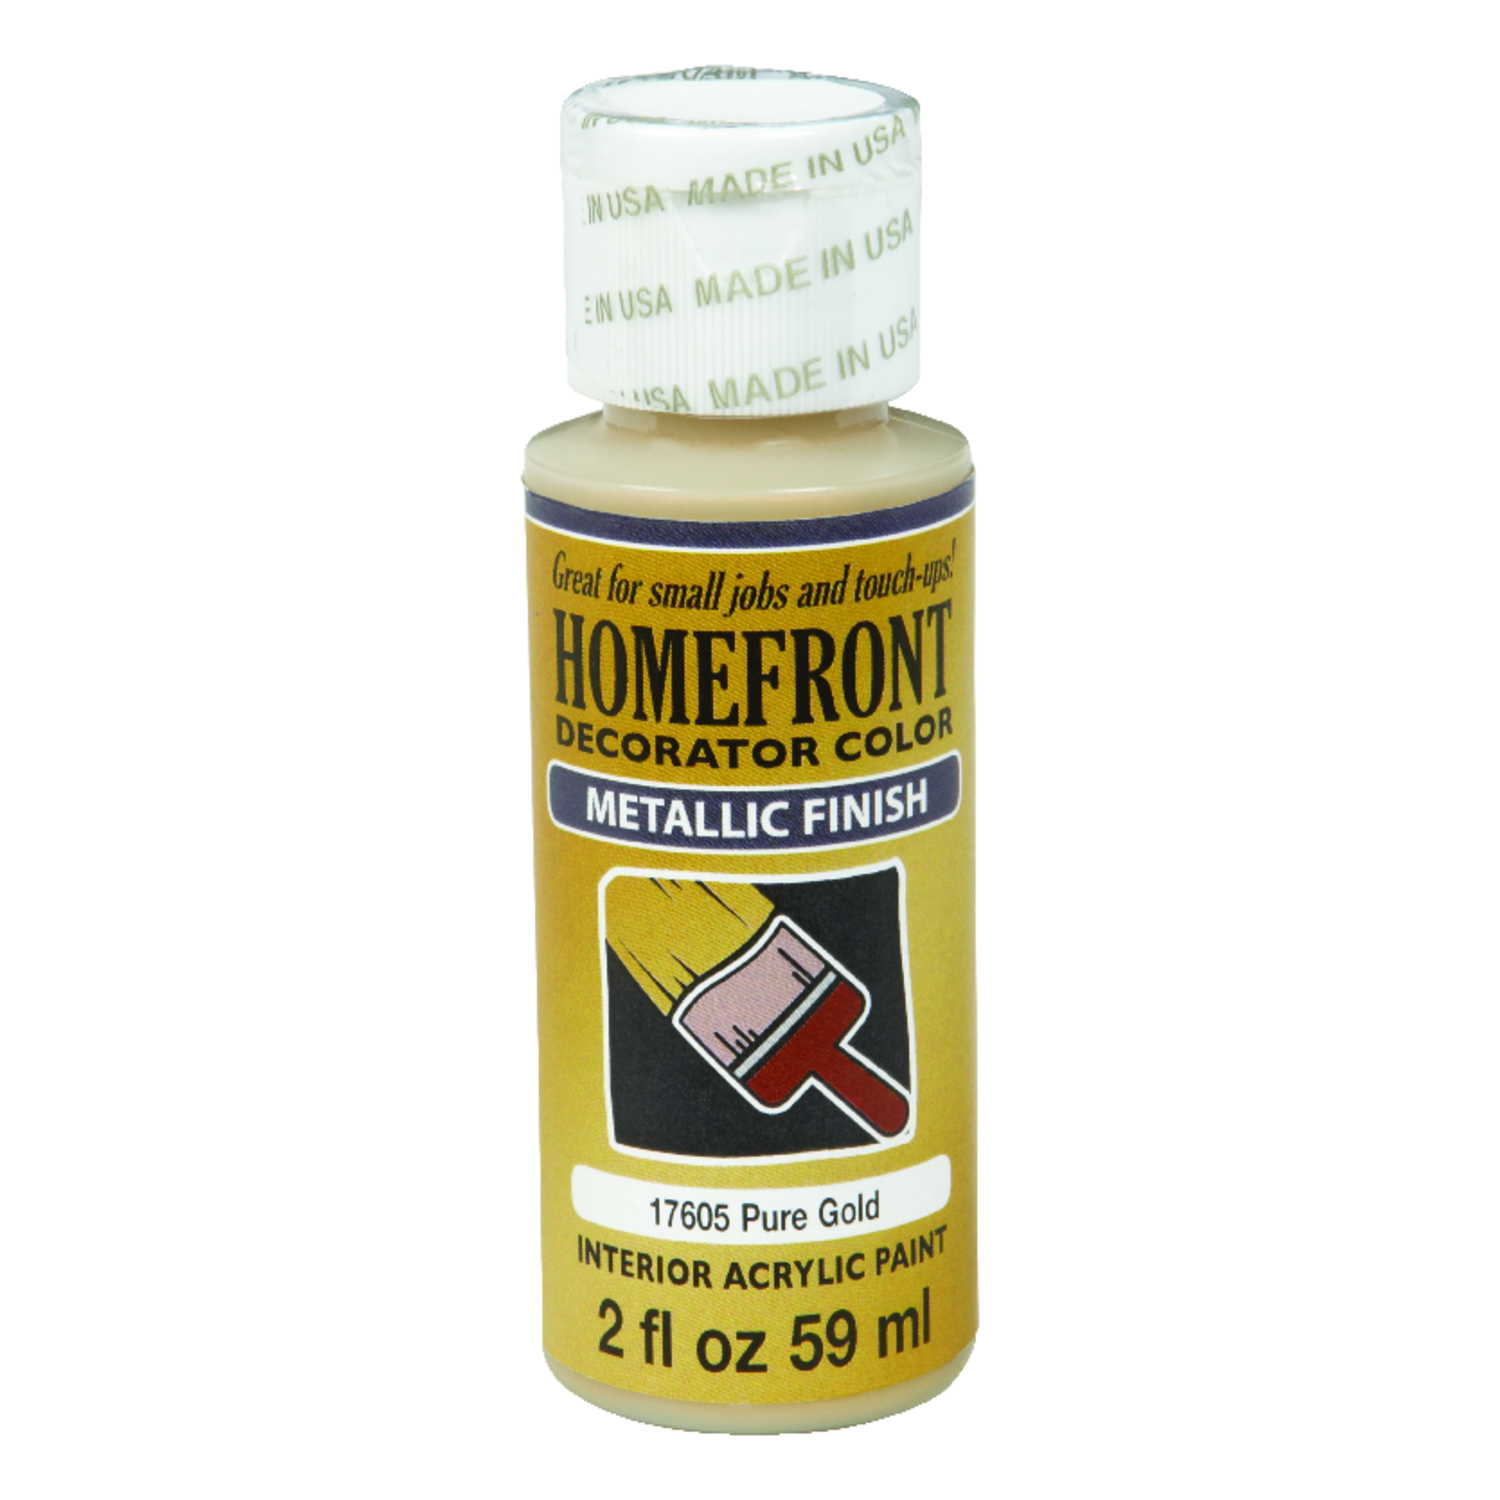 Homefront  Decorator Color  Metallic  Acrylic Latex  2 oz. Hobby Paint  Pure Gold